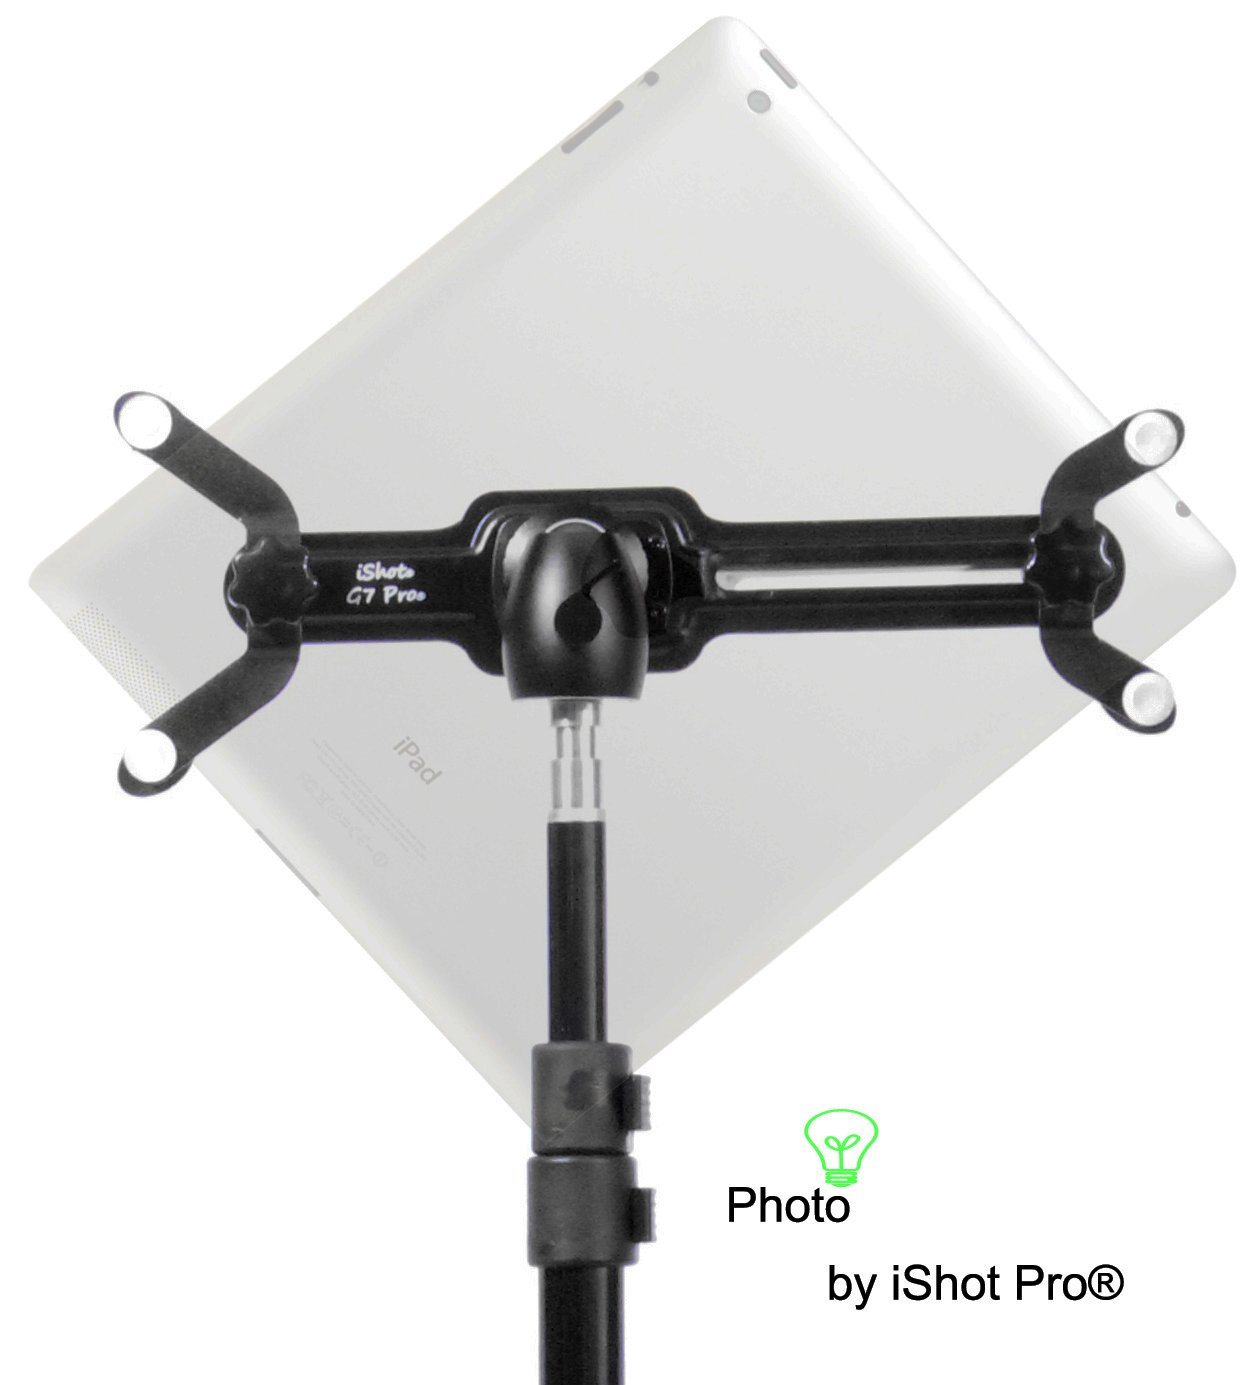 iPad 2, 3, 4 & iPad Air / Air 2 Tripod Mount Adapter Holder G7 Pro® by iShot Pro® Mounts AND Free Medium Ball Head: Long Lasting Sturdy Aluminum Metal Frame - 1/4 20 Pro Medium Ball Head Included - Retrofits Light Stands, Music Stands, Tripods and Other by iShot Pro